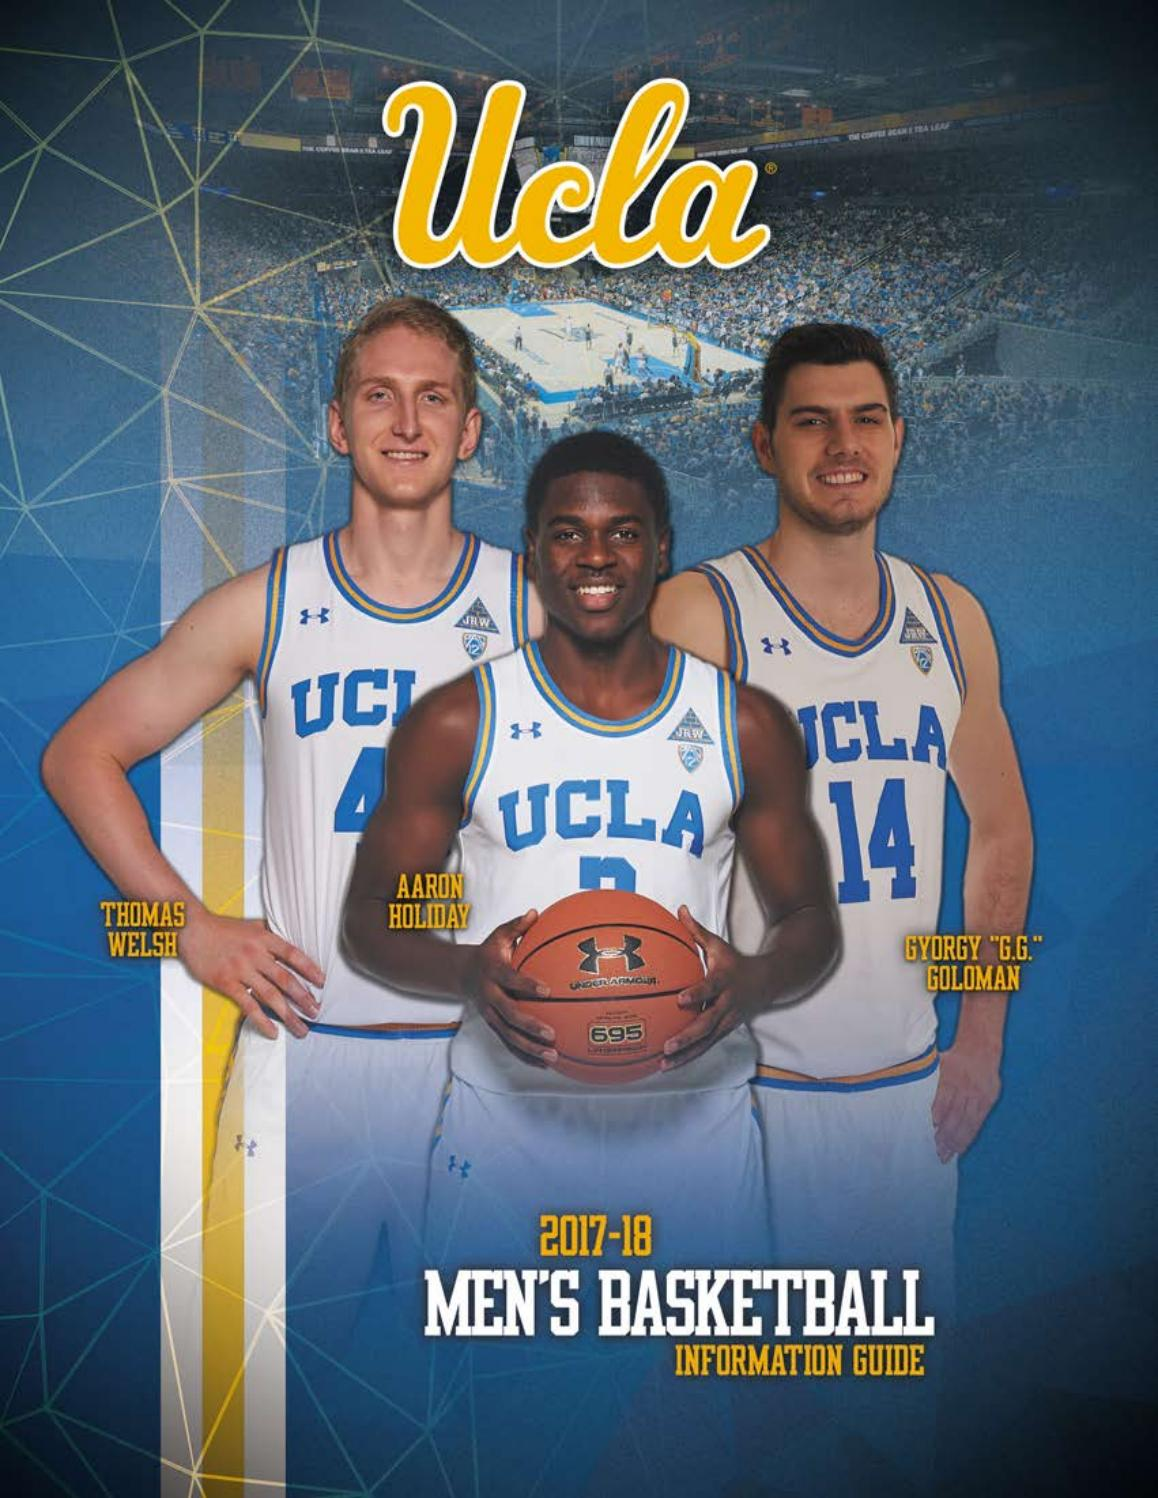 2017 18 Ucla Mens Basketball Information Guide By Athletics Hp Pavilion Dv1000 Dv4000915 Laptop Schematic Diagramct3 Issuu